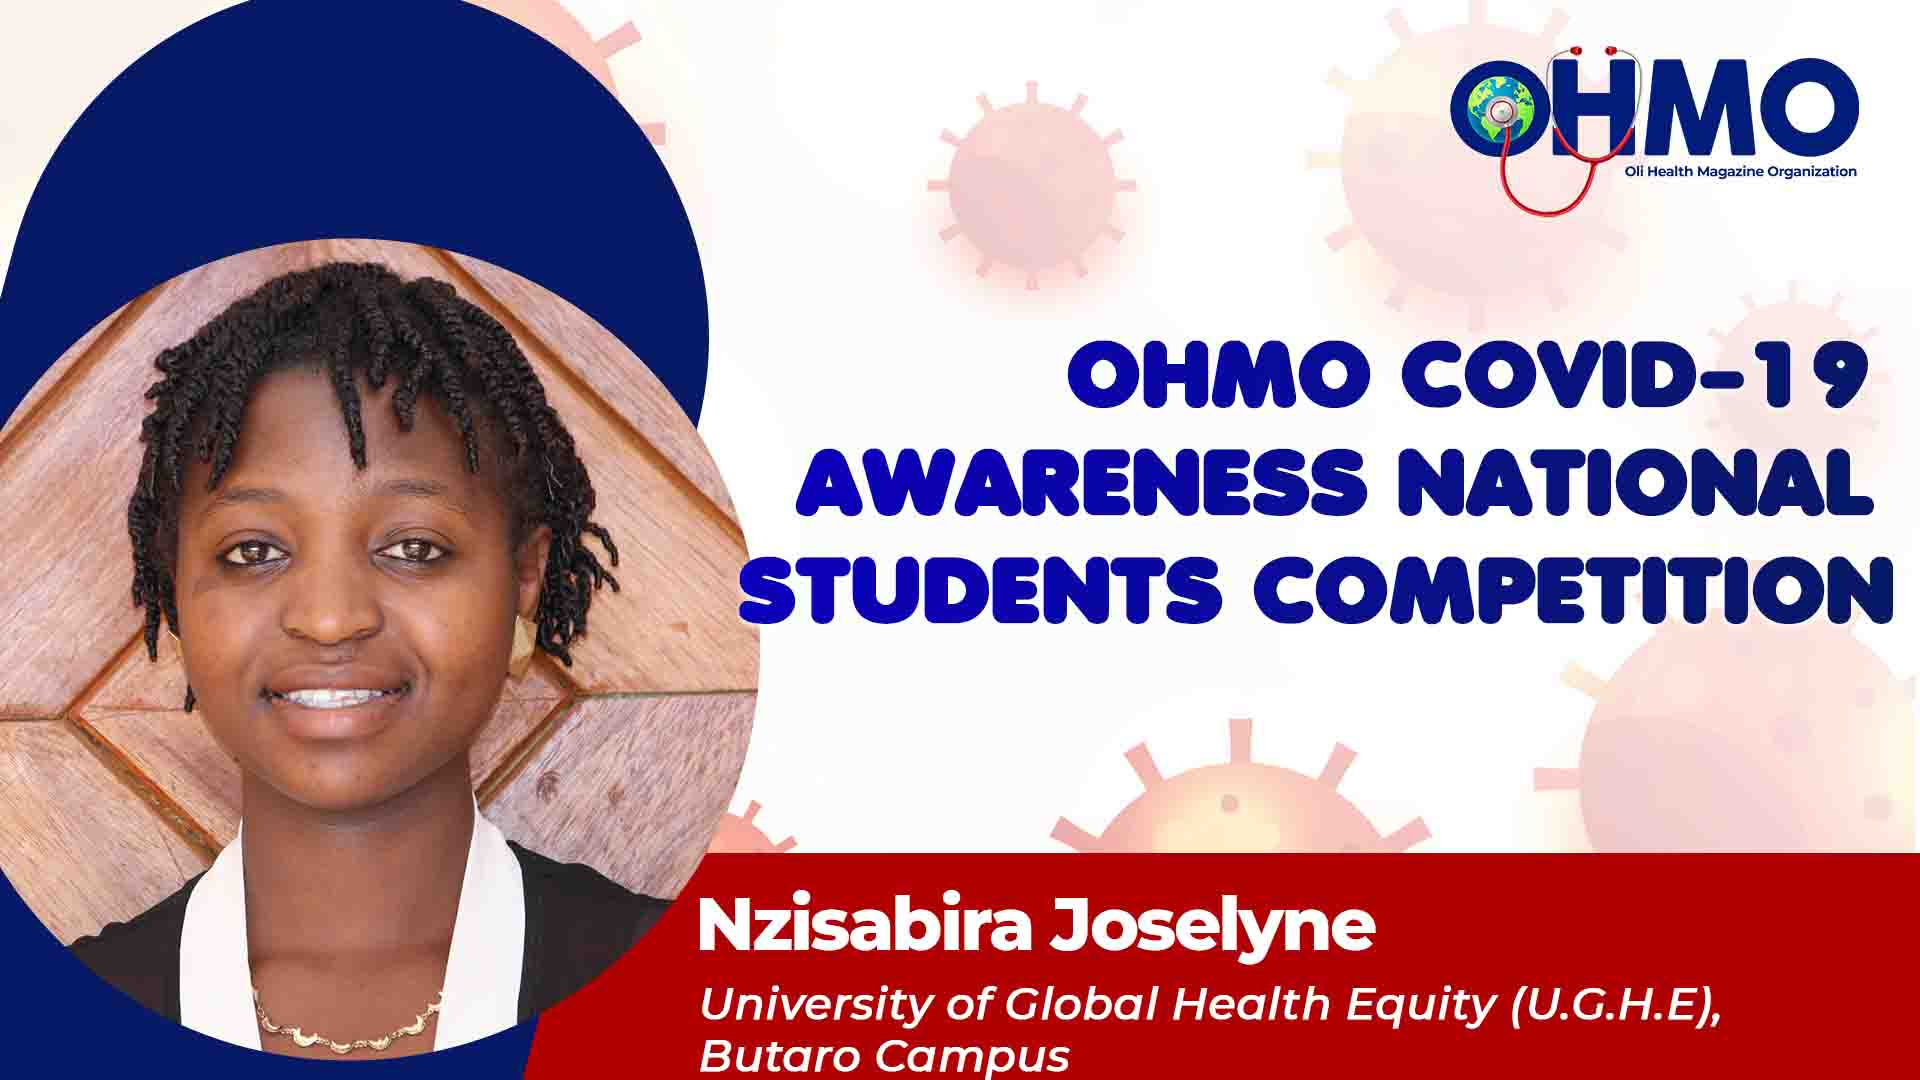 Mental Health Crisis during COVID-19: A Voice of Medical Practitioners to Be Heard - Nzisabira Joselyne from UGHE (ENTRY 38)